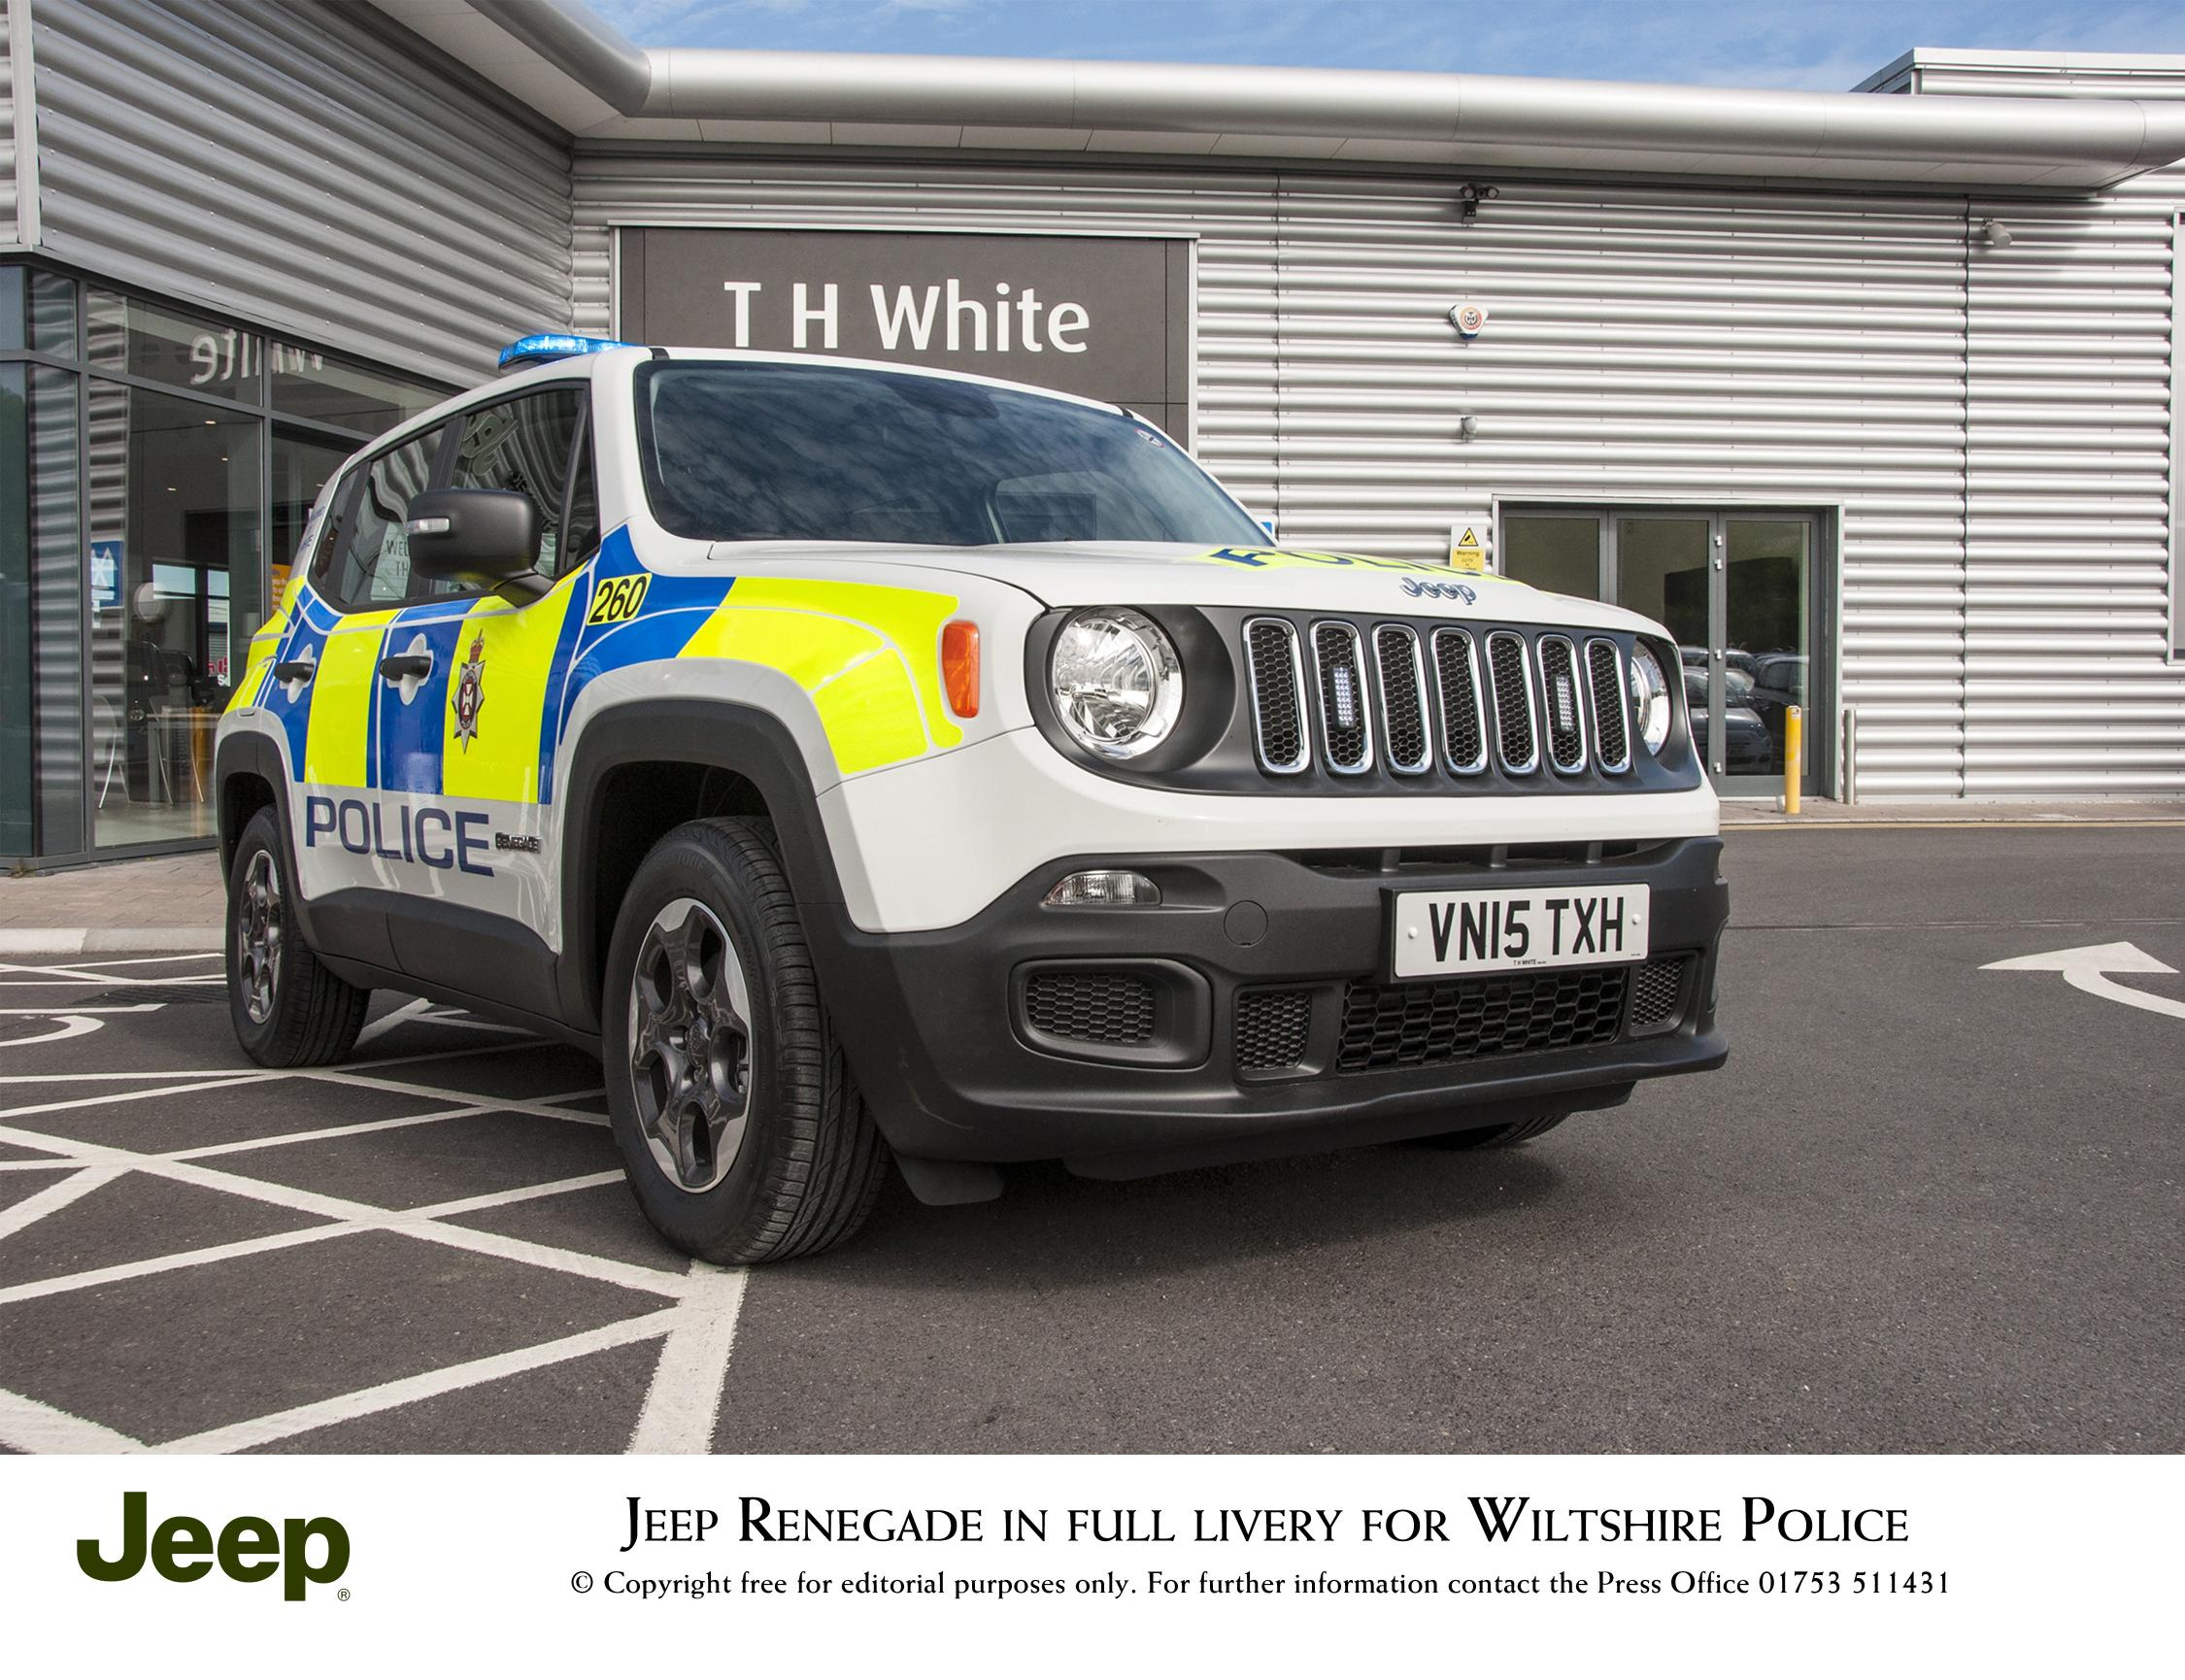 wiltshire police test de jeep renegade alex miedema. Black Bedroom Furniture Sets. Home Design Ideas